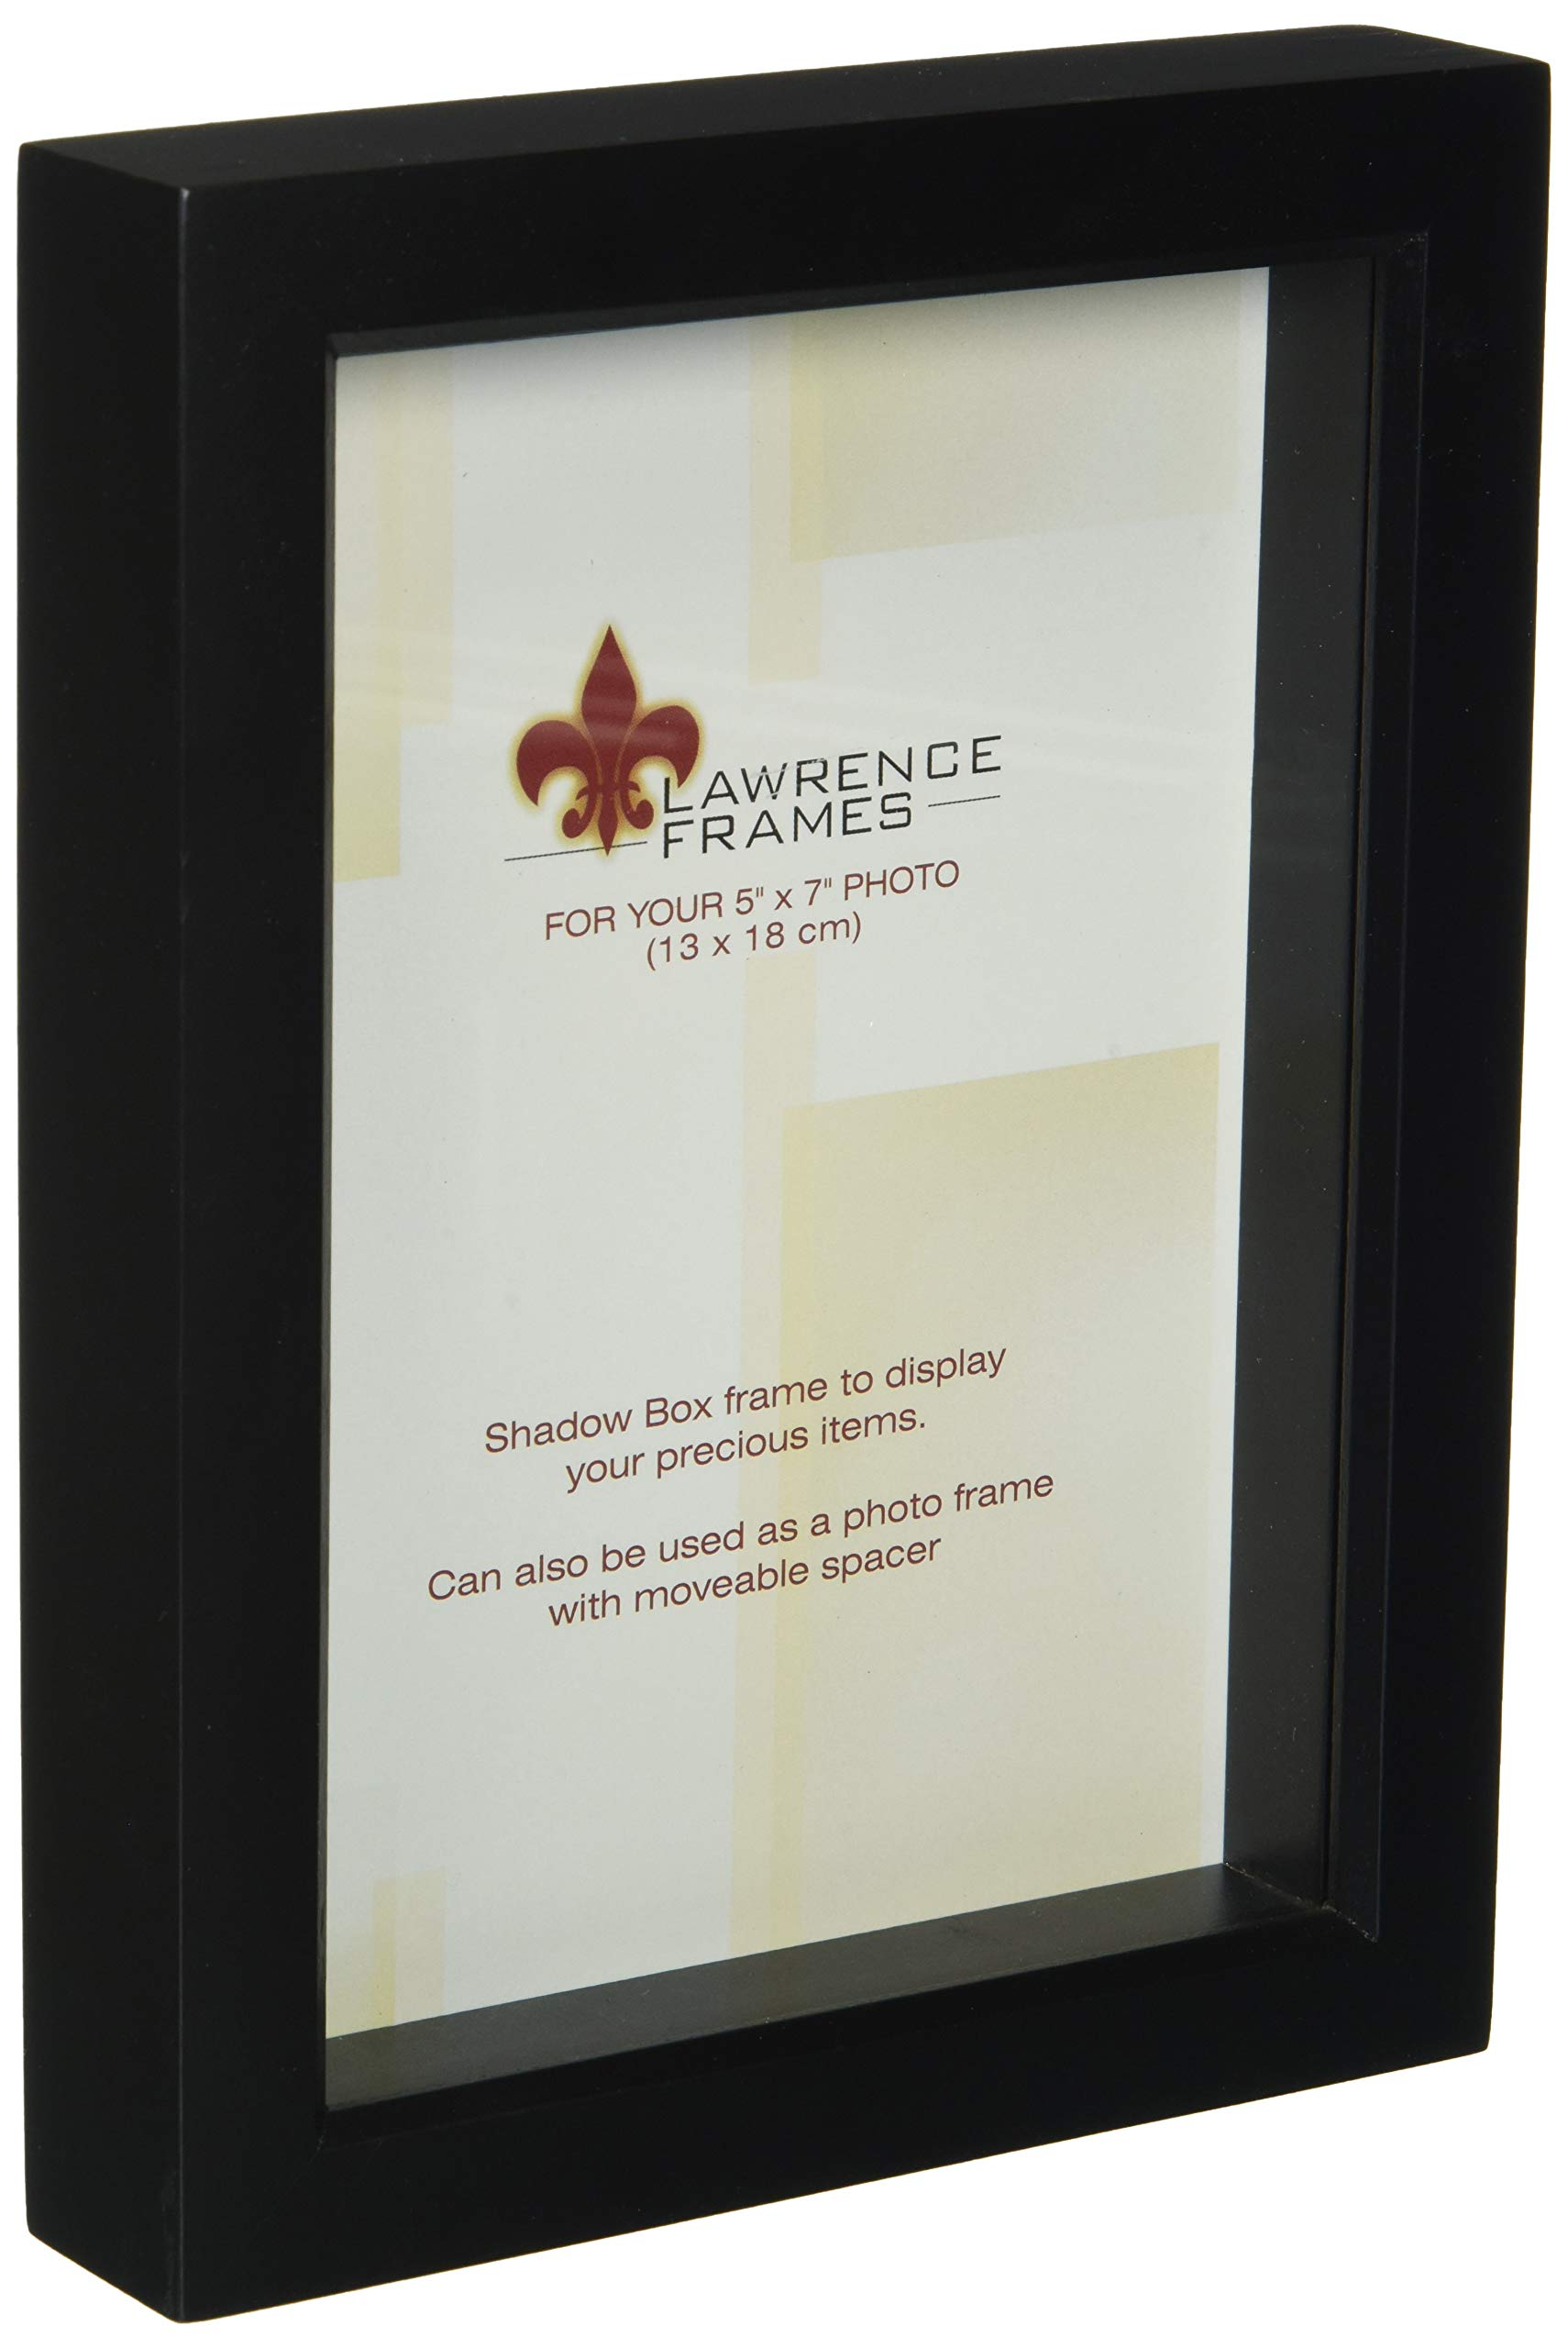 Lawrence Frames 795057 Black Wood Treasure Box Shadow Box Picture Frame, 5 by 7-Inch by Lawrence Frames